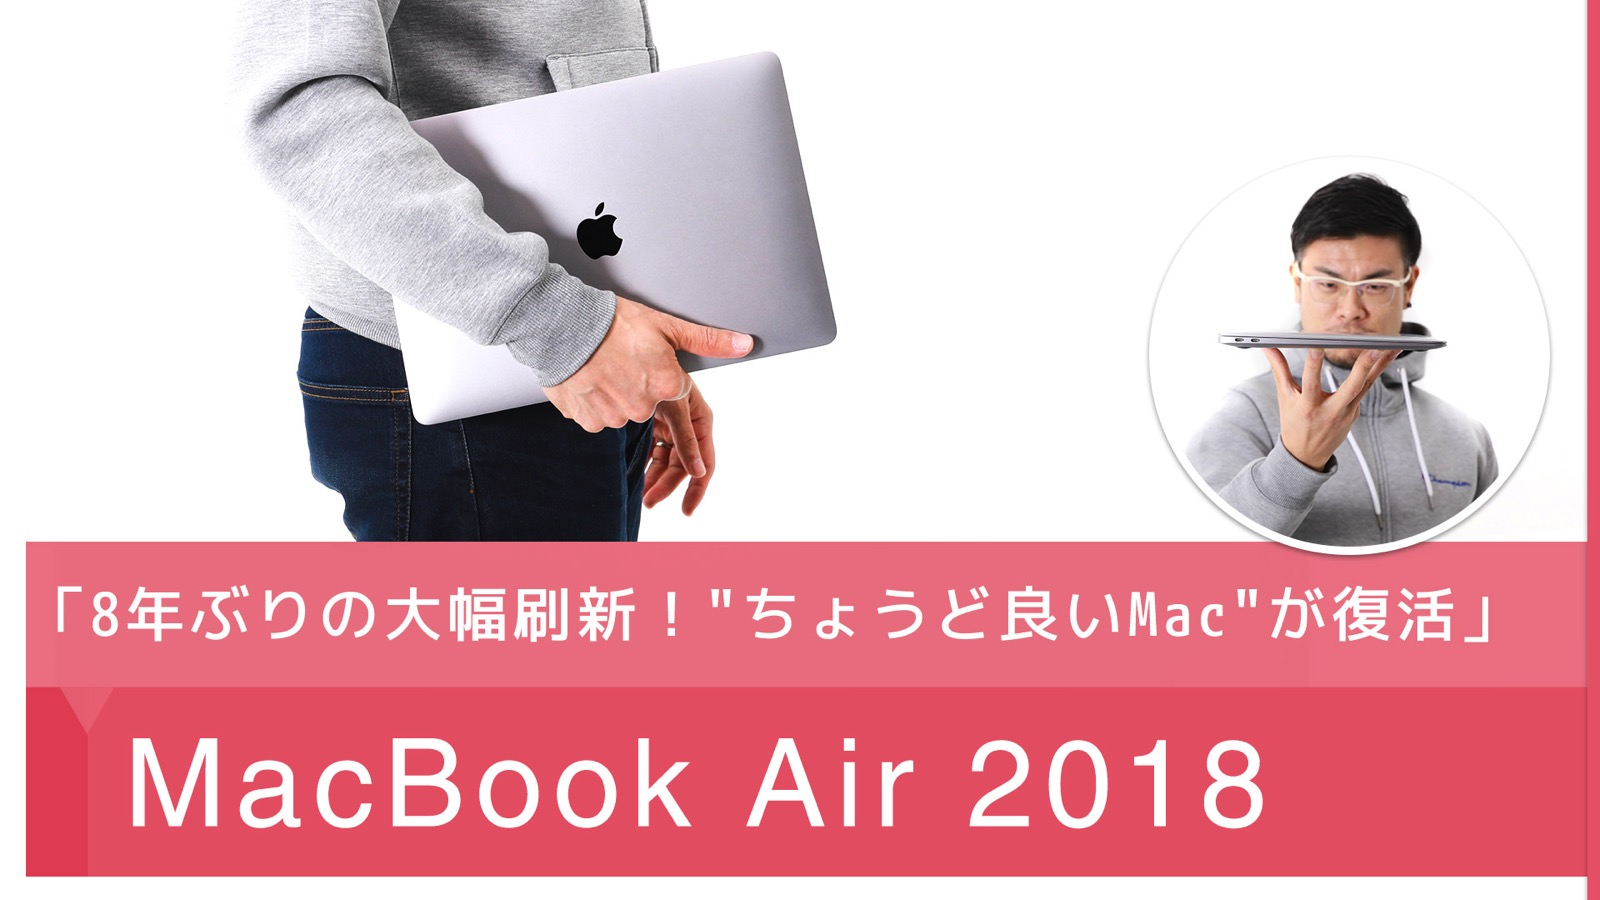 Macbookair2018